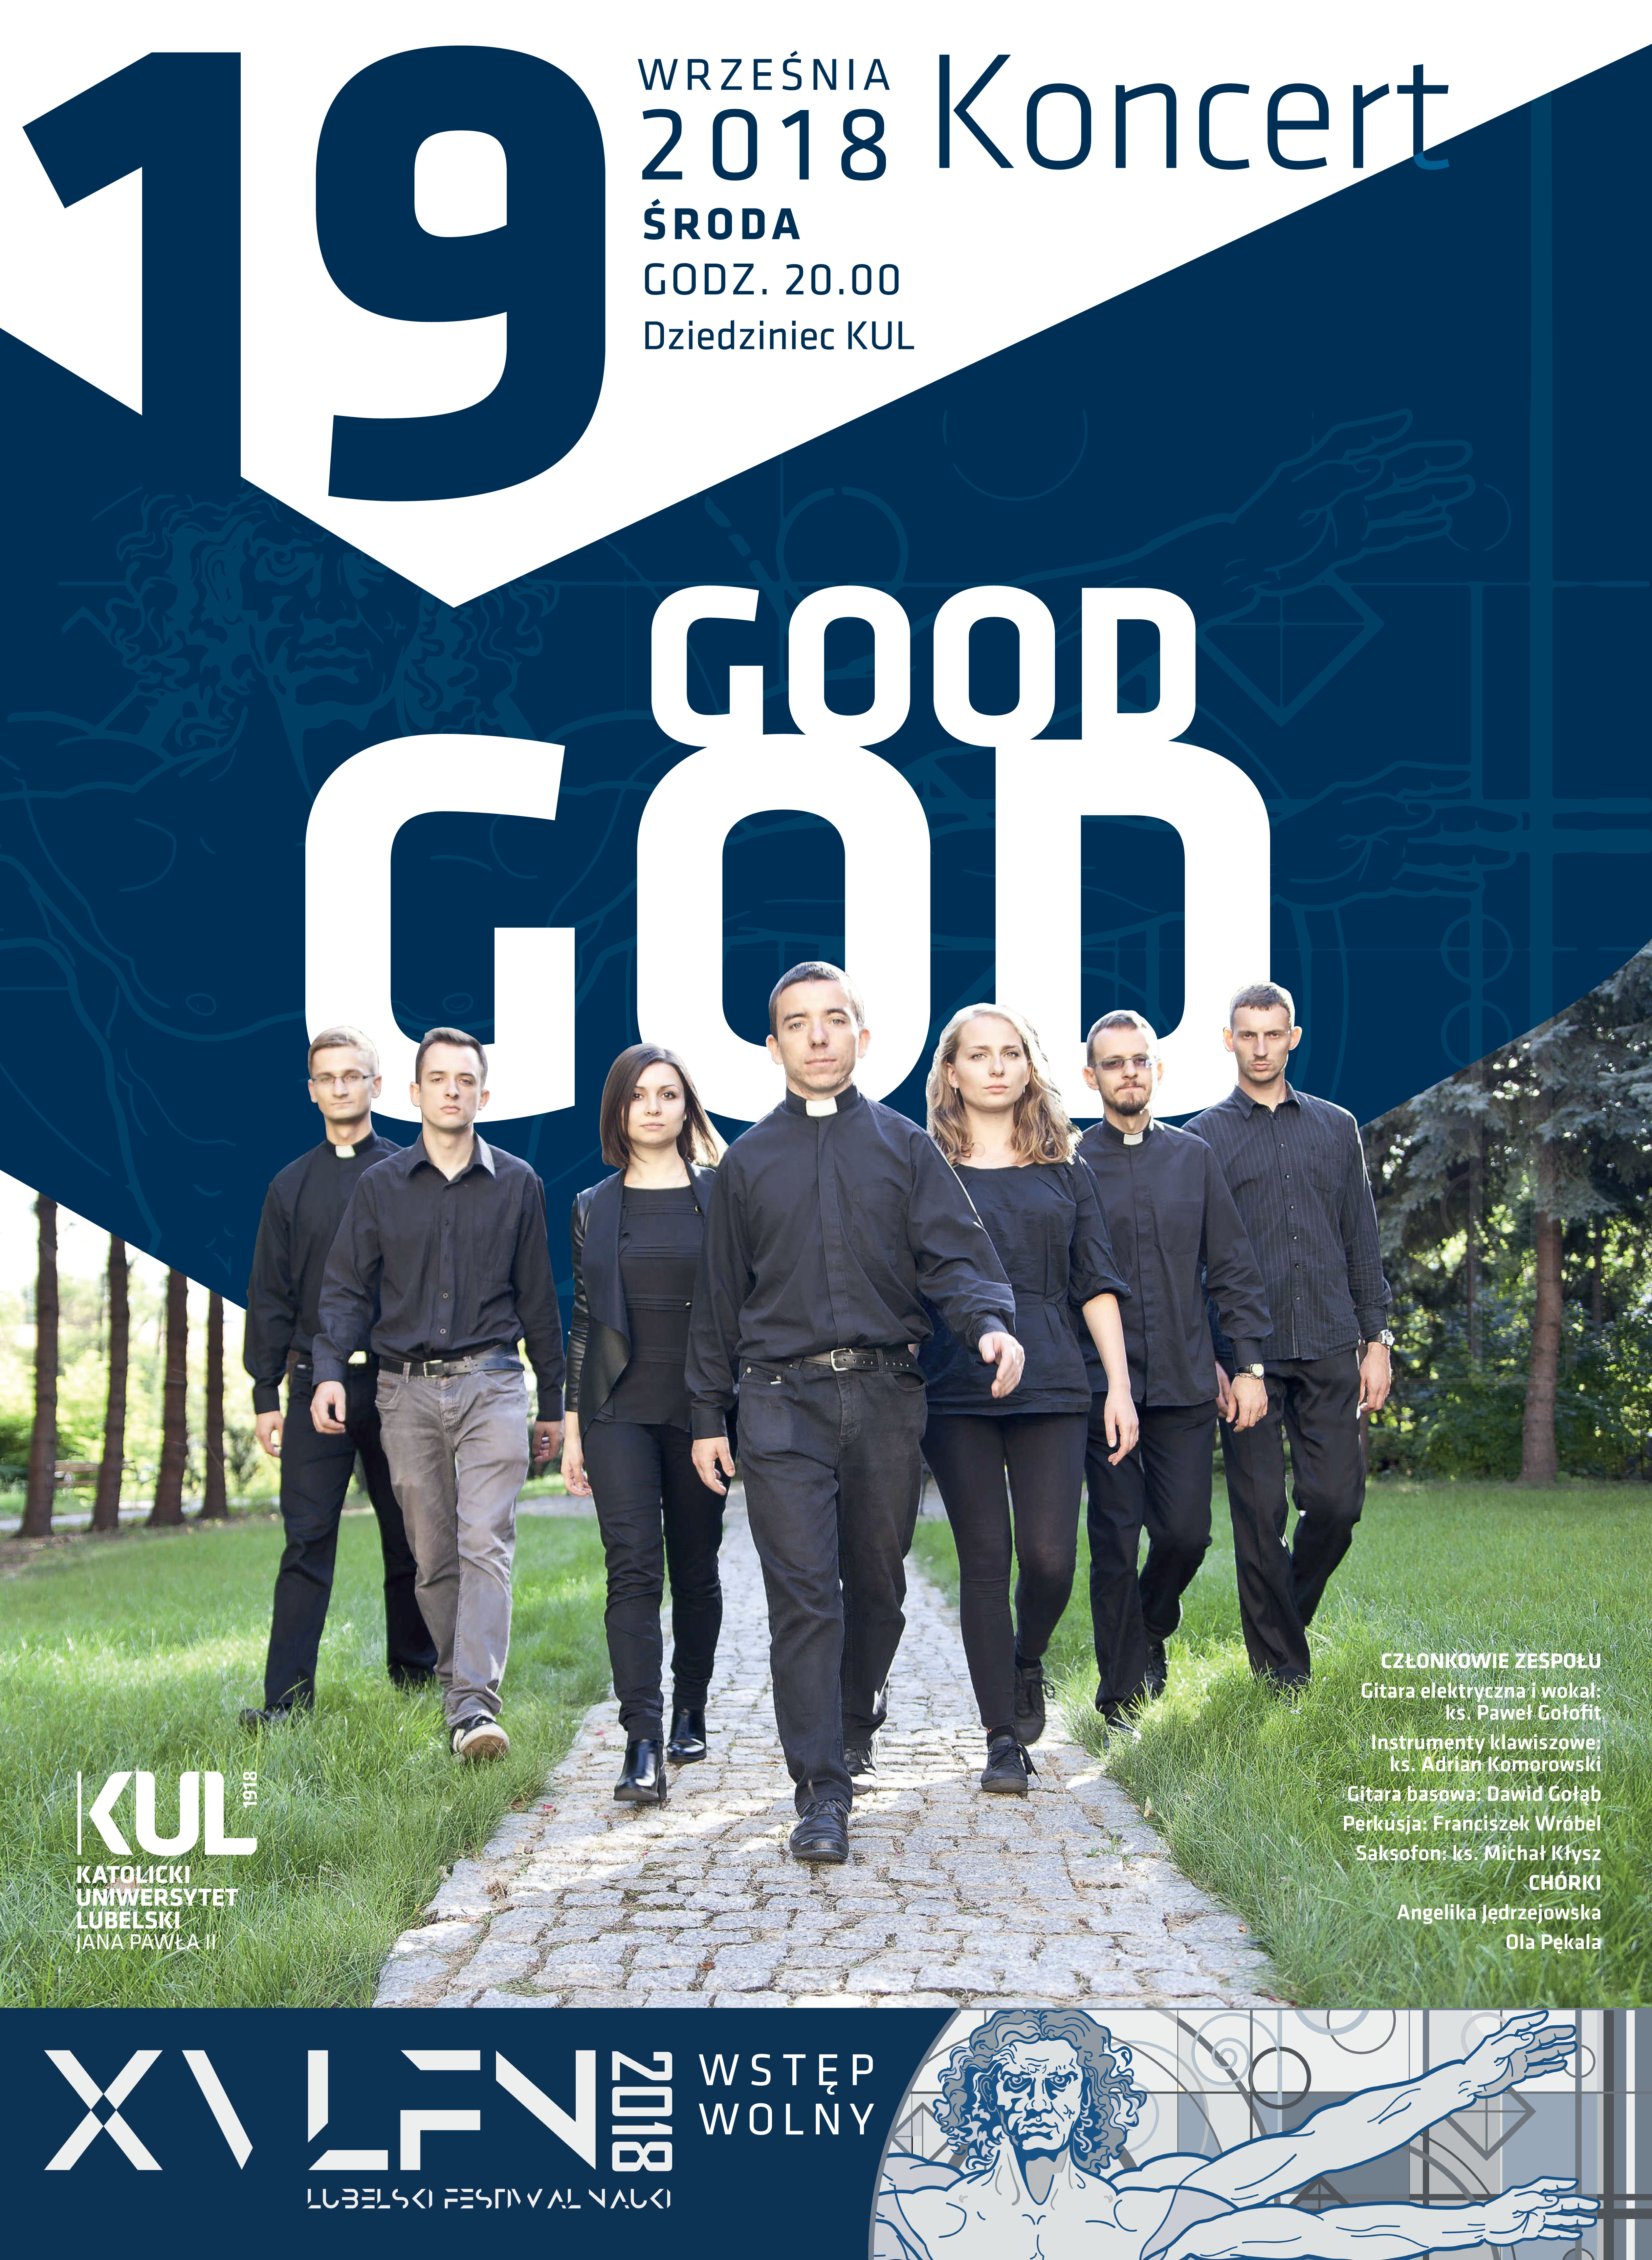 kul_plakat_2018_koncert_Good_God